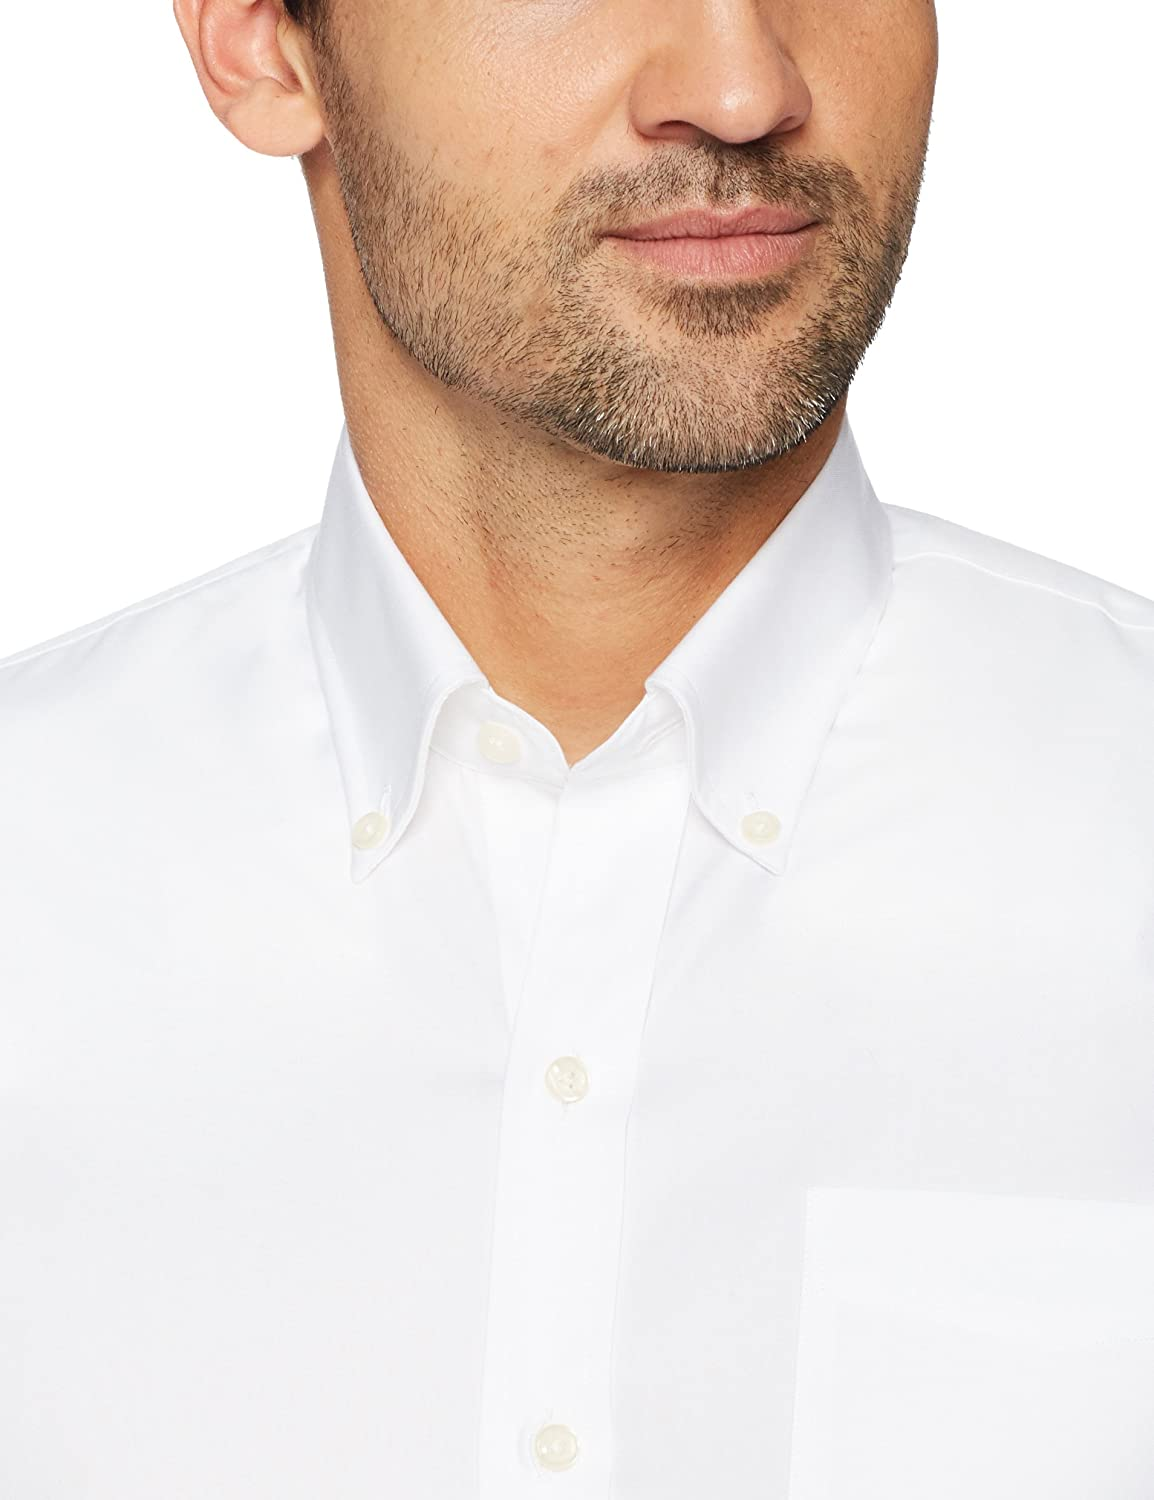 BUTTONED DOWN Mens Slim Fit Button-Collar Solid Pinpoint Dress Shirt Brand Supima Cotton Non-Iron